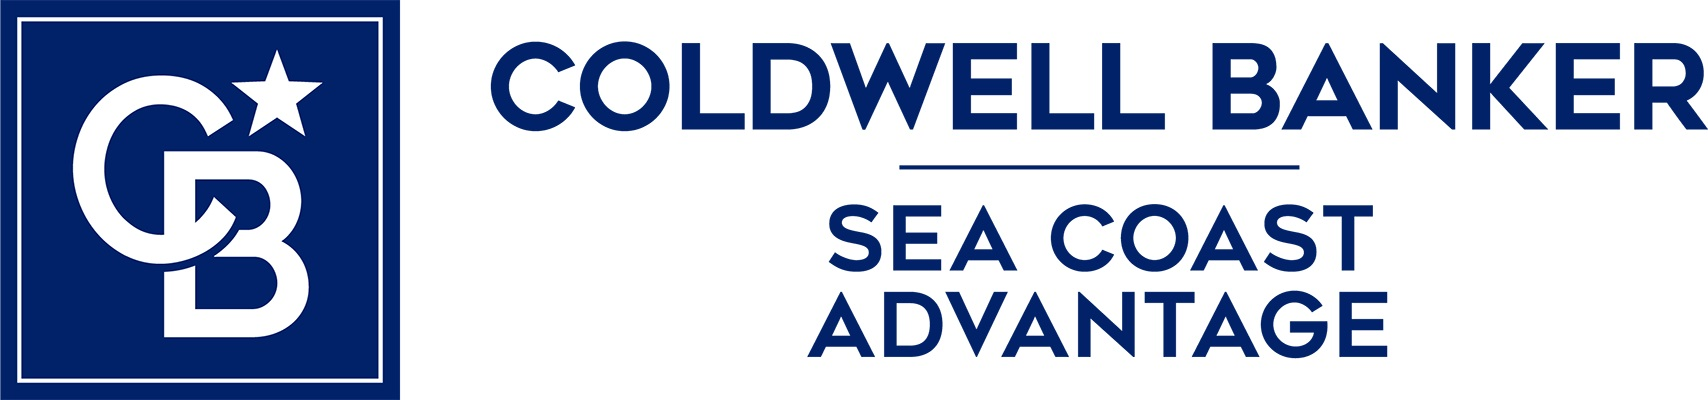 Megan Wallisch - Coldwell Banker First Logo